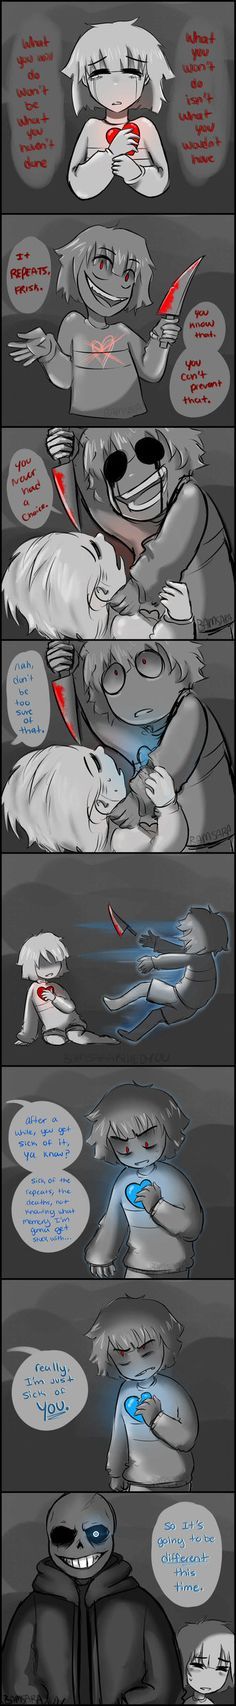 Destroy The Source by BamSaraKilledYou on DeviantArt <<< I'm trying not to pin Undertale stuff until I've actually watched a playthrough but this was too freaking good